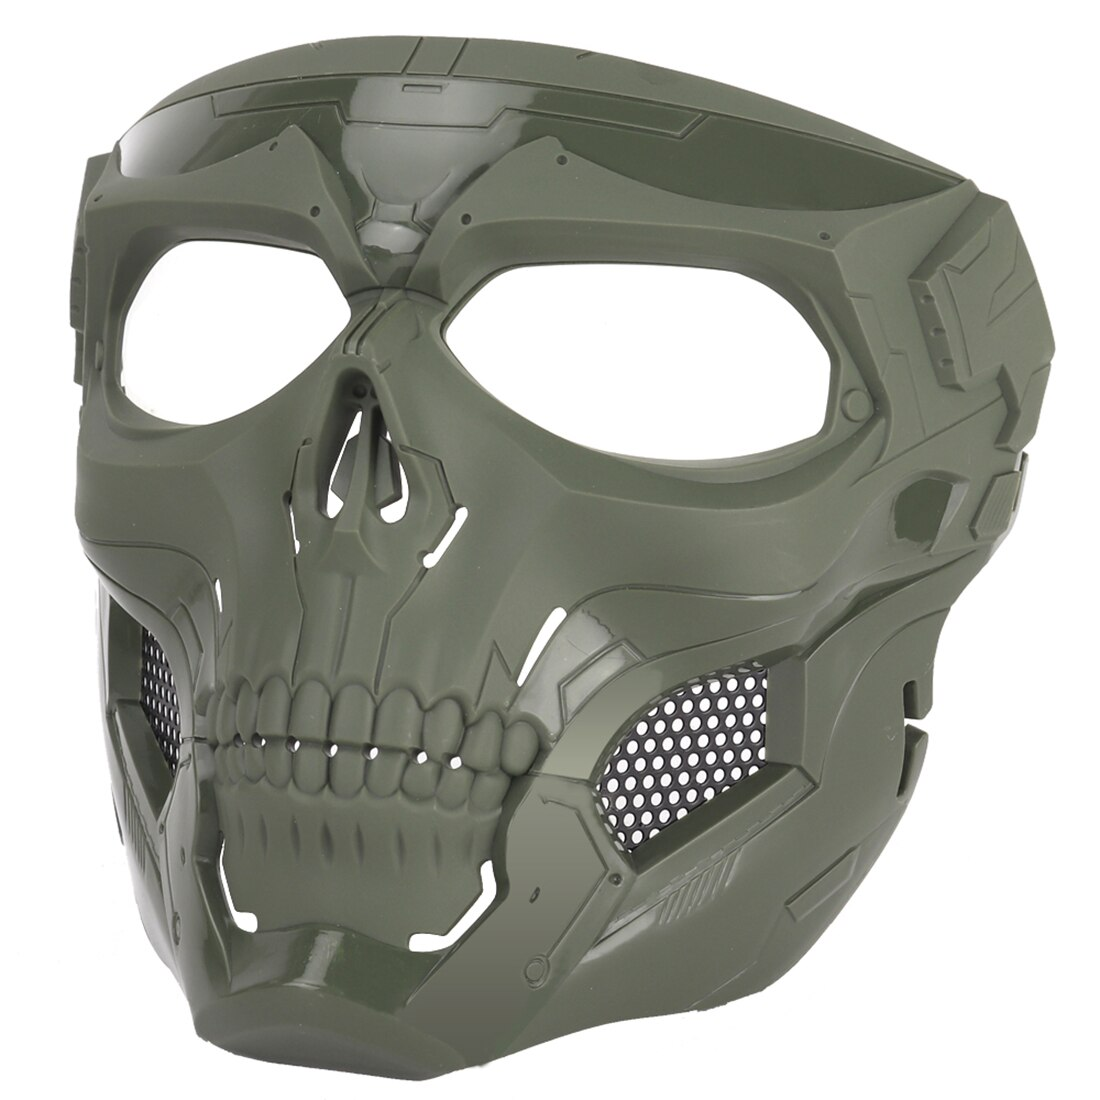 NFSTRIKE WST Skull Tactical Mask Halloween Party Games Face Mask For FAST Outdoors Tactics Accessories MA